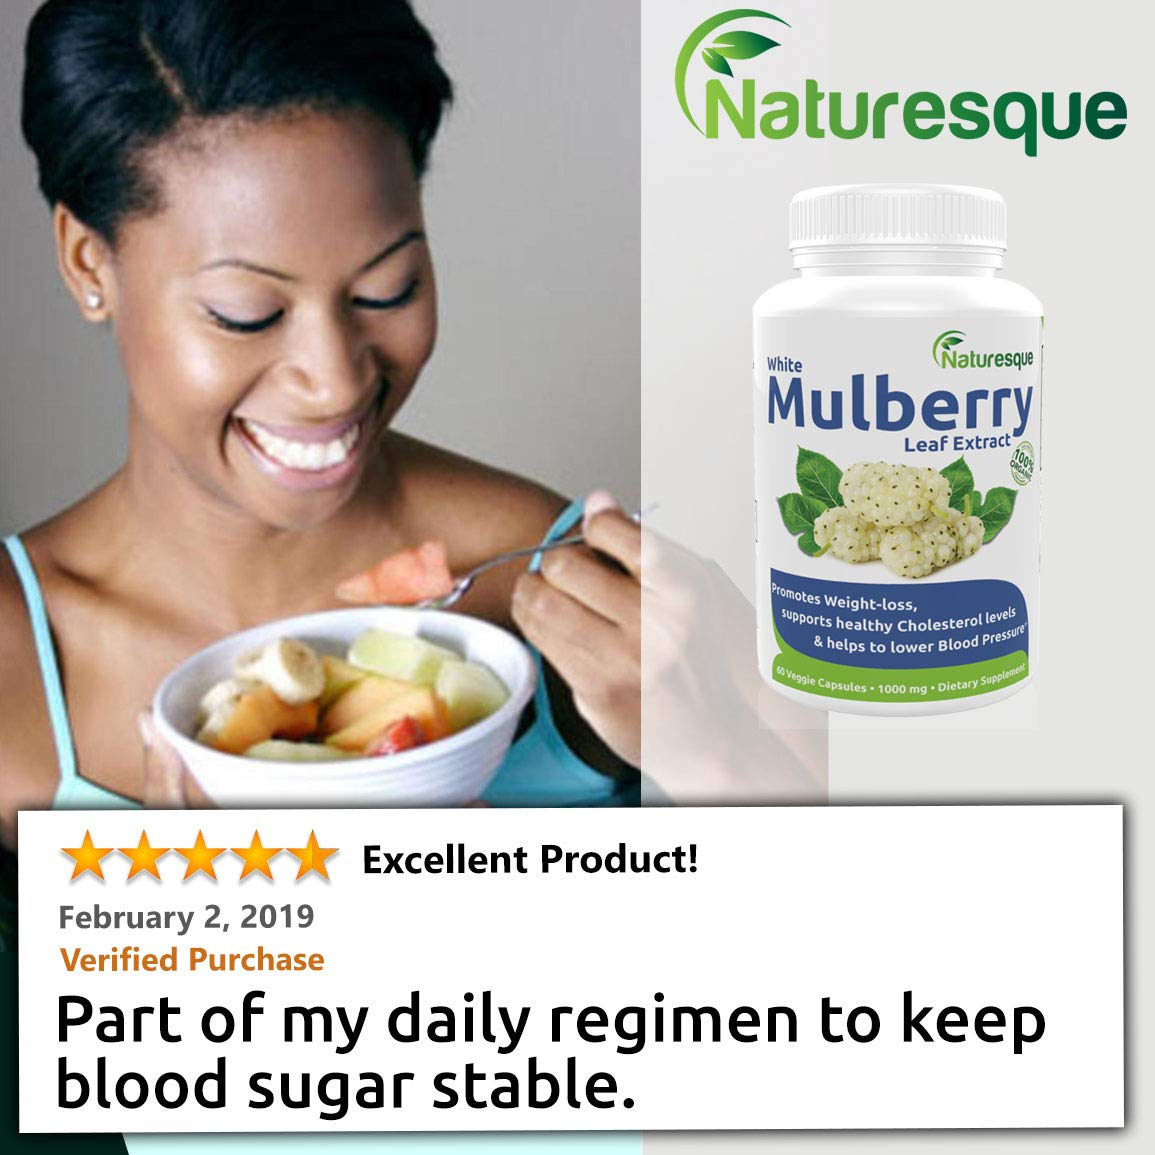 Naturesque White Mulberry Leaf Extract   Controls Appetite, Curbs Sugar & Carb Cravings   Helps Lower Blood Sugar Levels   Perfect for Zuccarin Diet Weight Loss   1000mg 60 Vegan Capsules